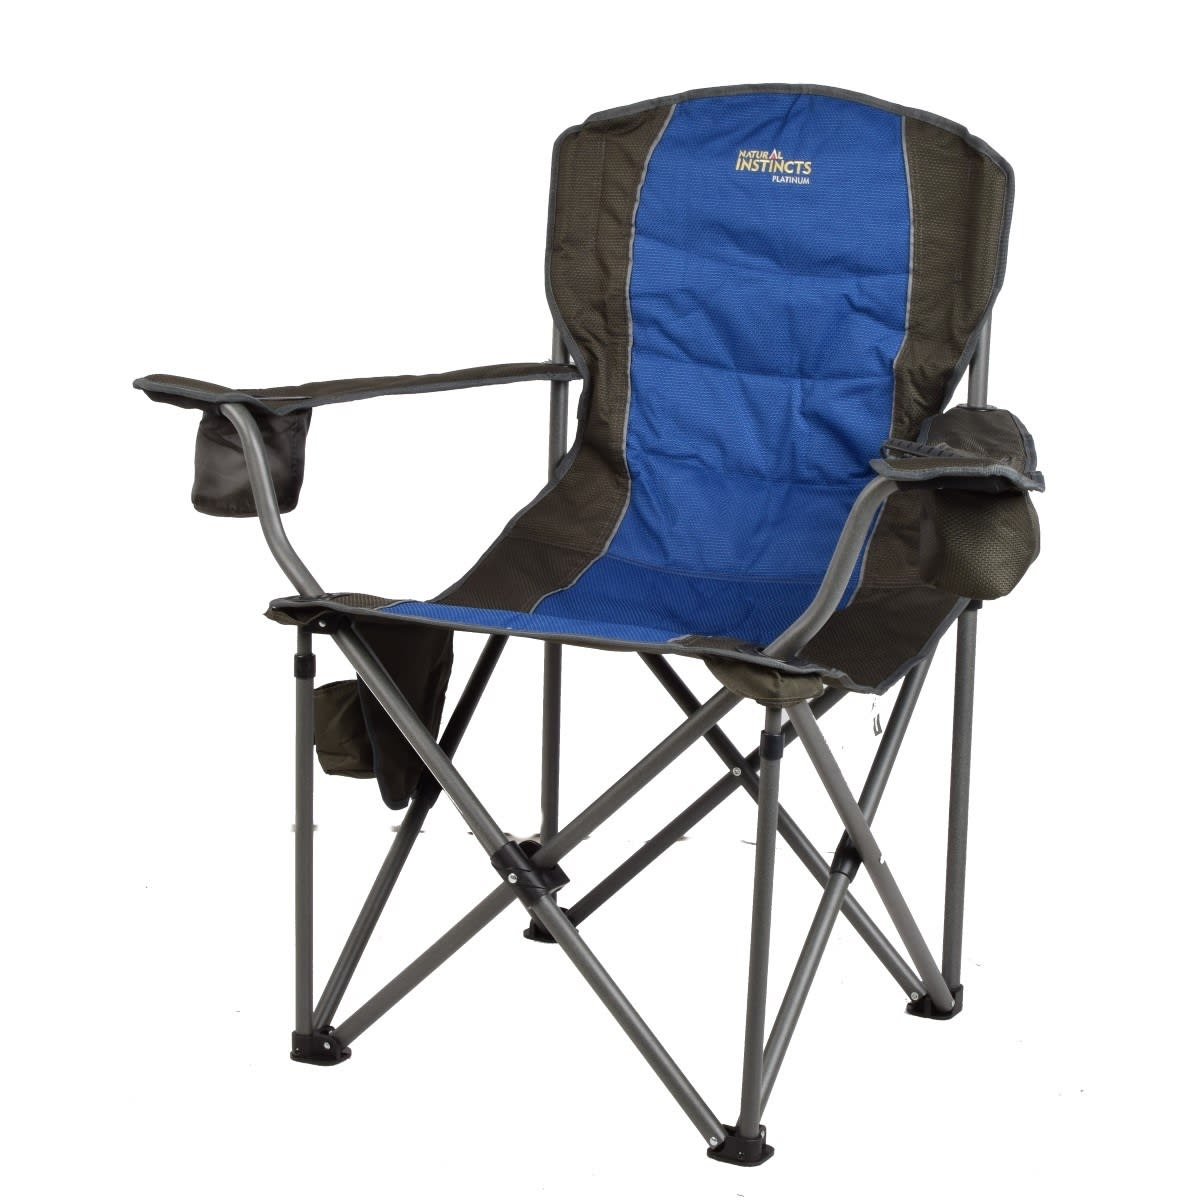 Natural Instincts Platinum Oversize Deluxe Heavy Duty Chair With Pocket